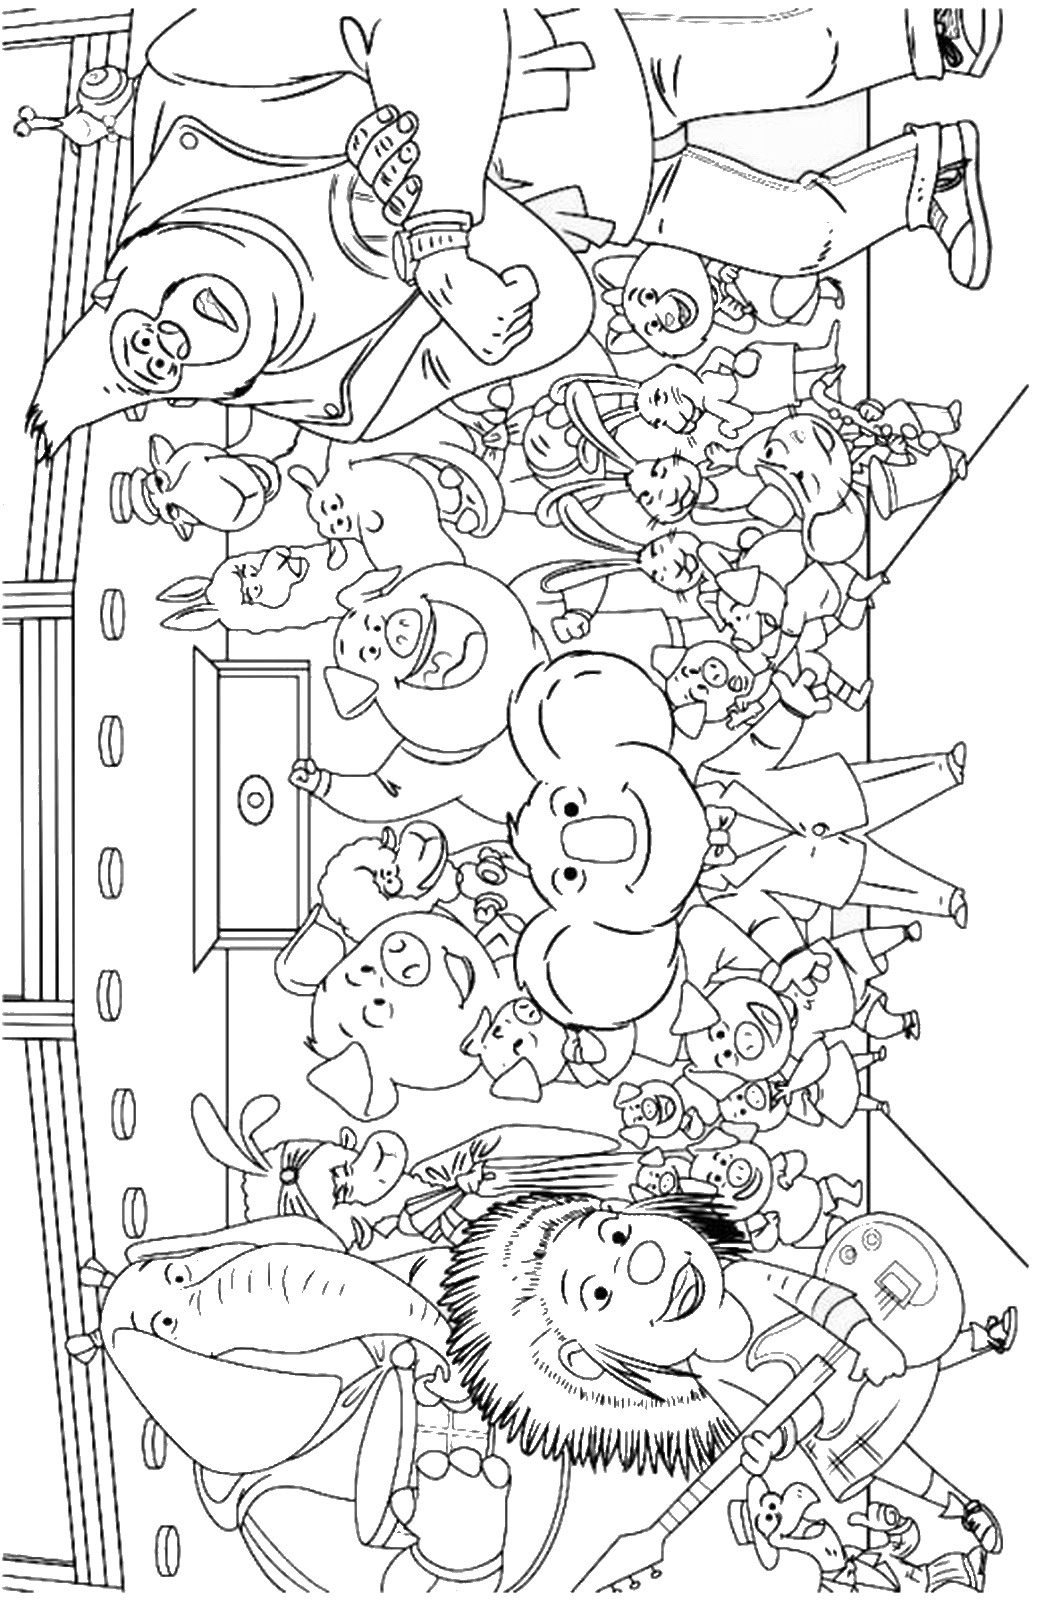 for Sing movie coloring pages